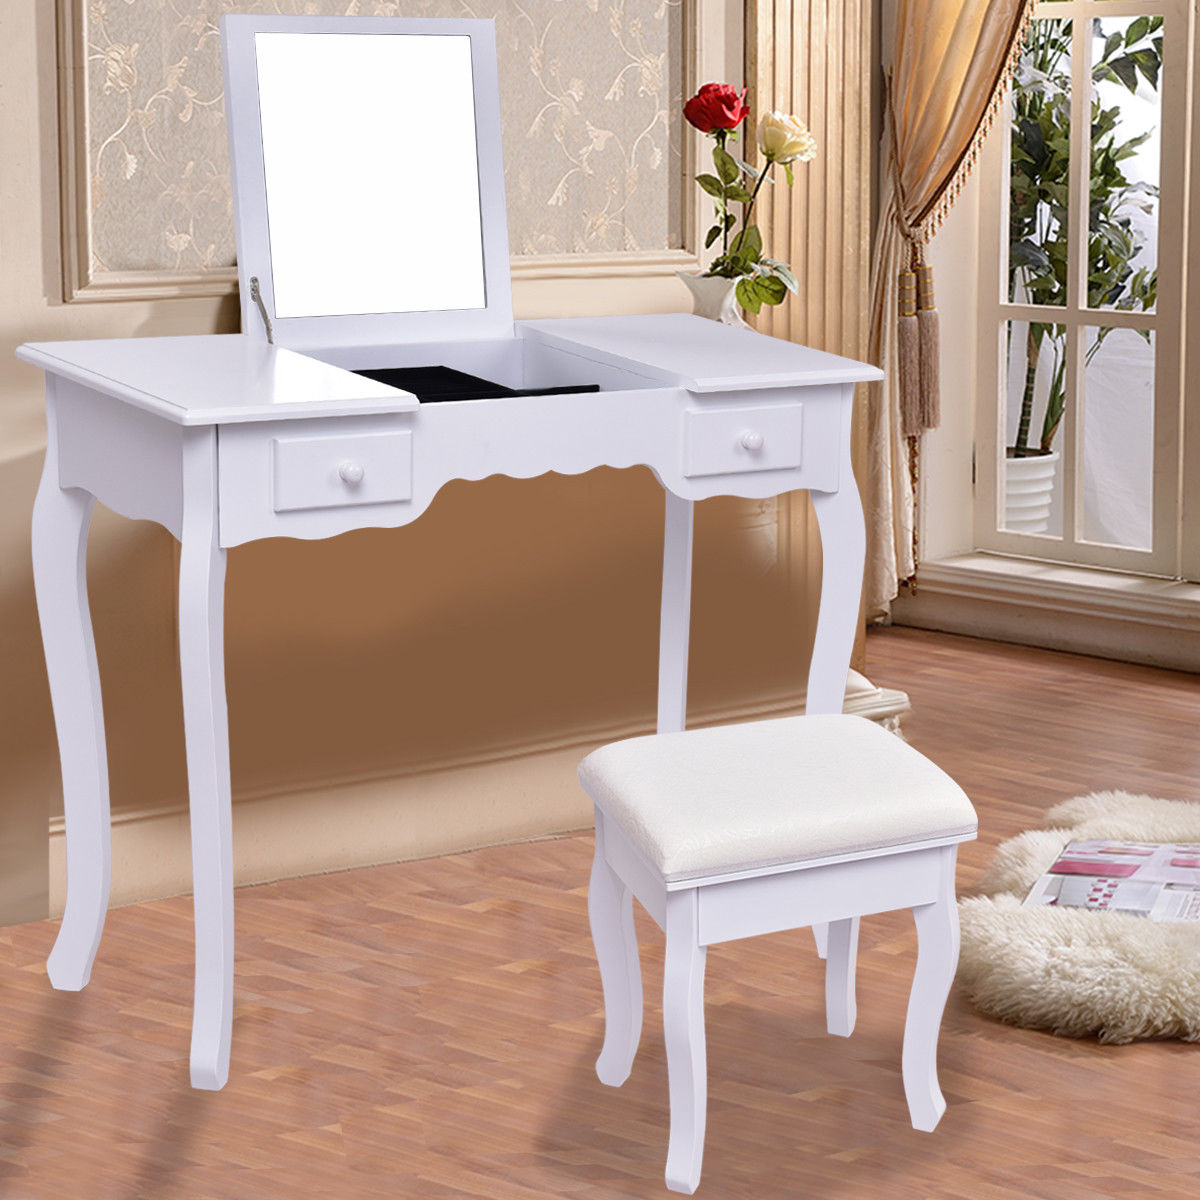 Giantex White Vanity Dressing Table Set Mirrored Bathroom Furniture With Stool Table Modern Make Up Dressers Desk HW56231WH ...